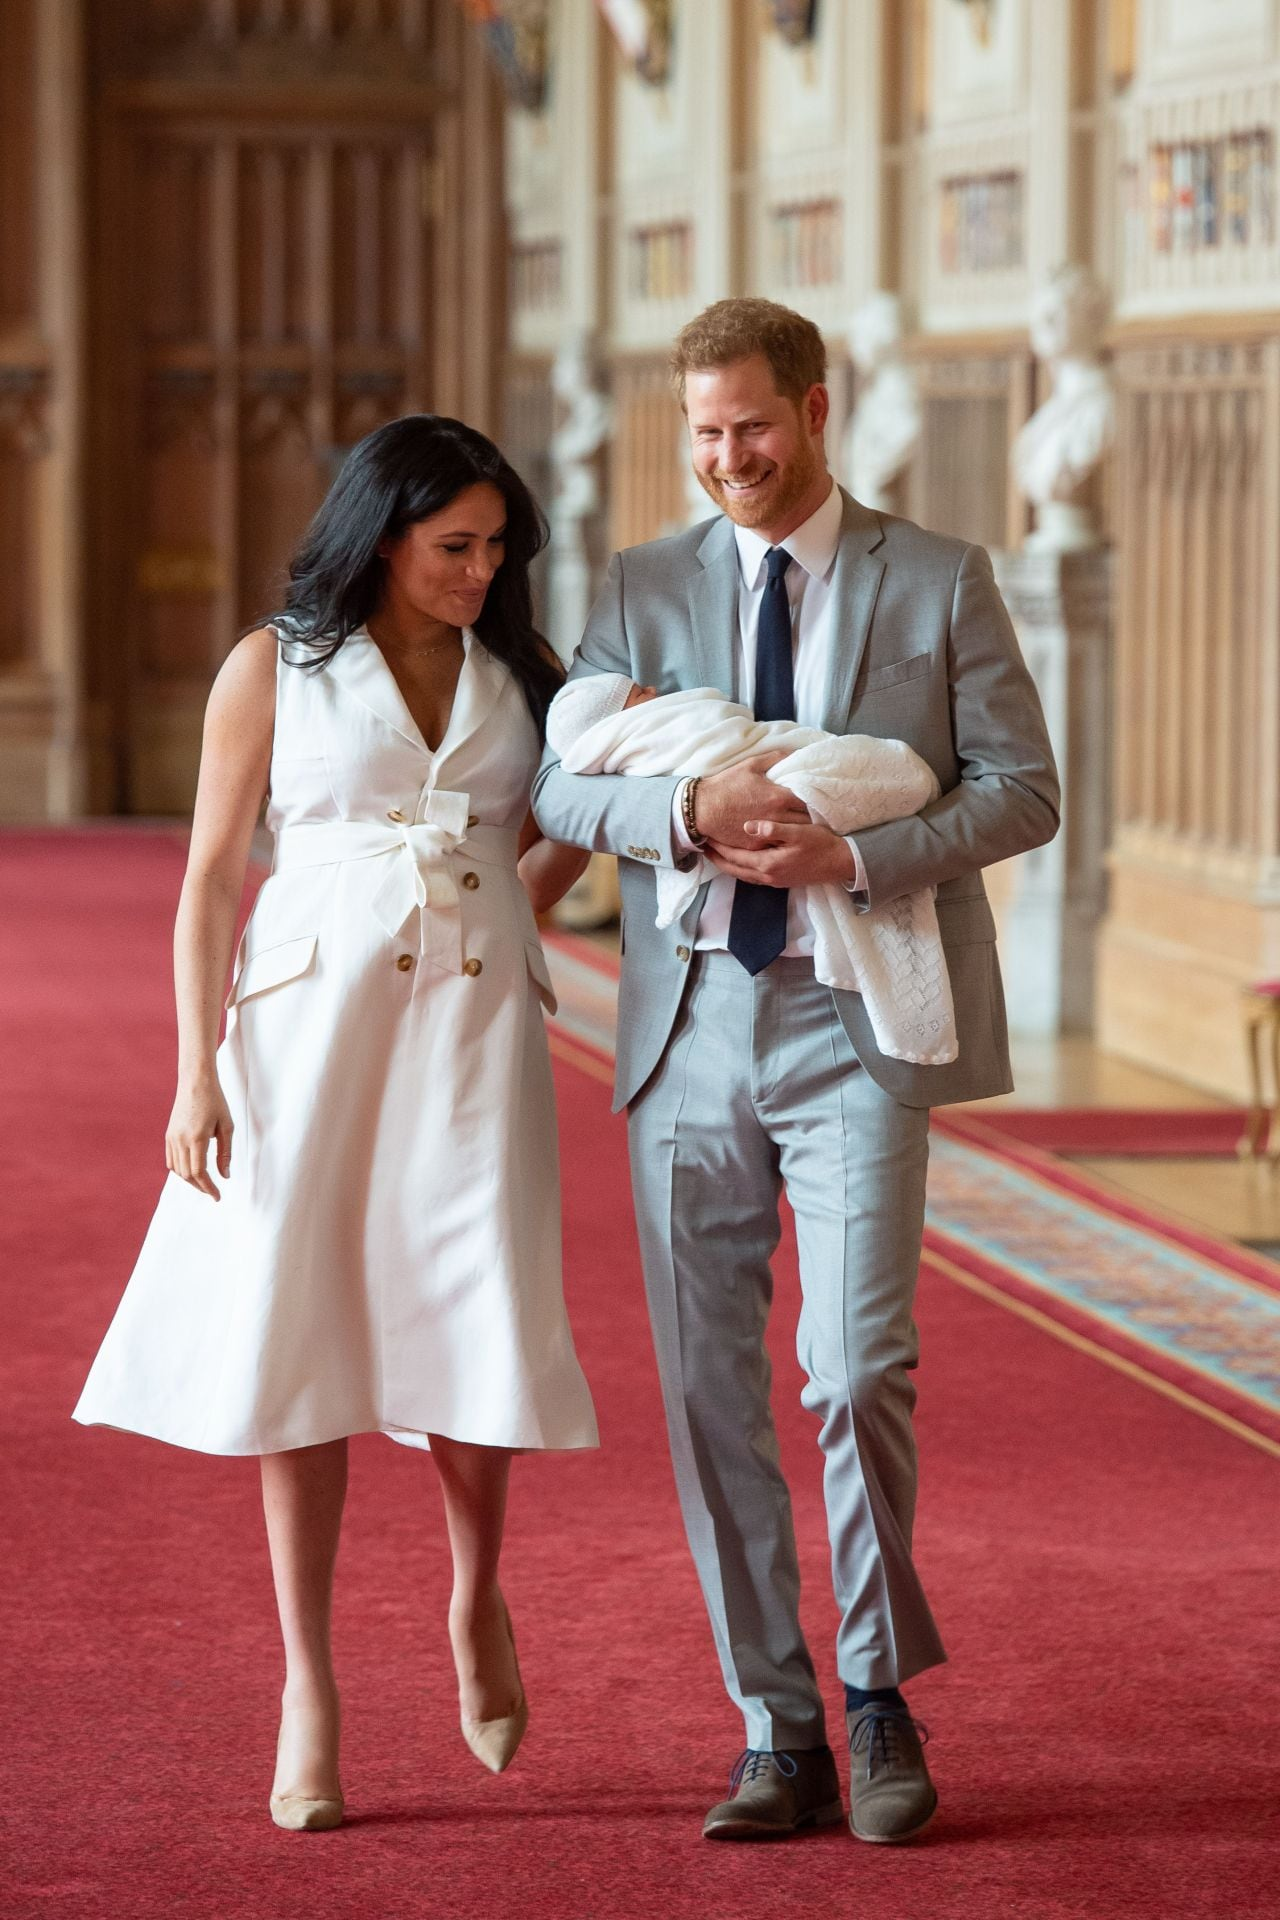 0535d8b0e6c84 The significance behind Meghan Markle's Grace Wales Bonner tuxedo dress for  first photos with son Archie